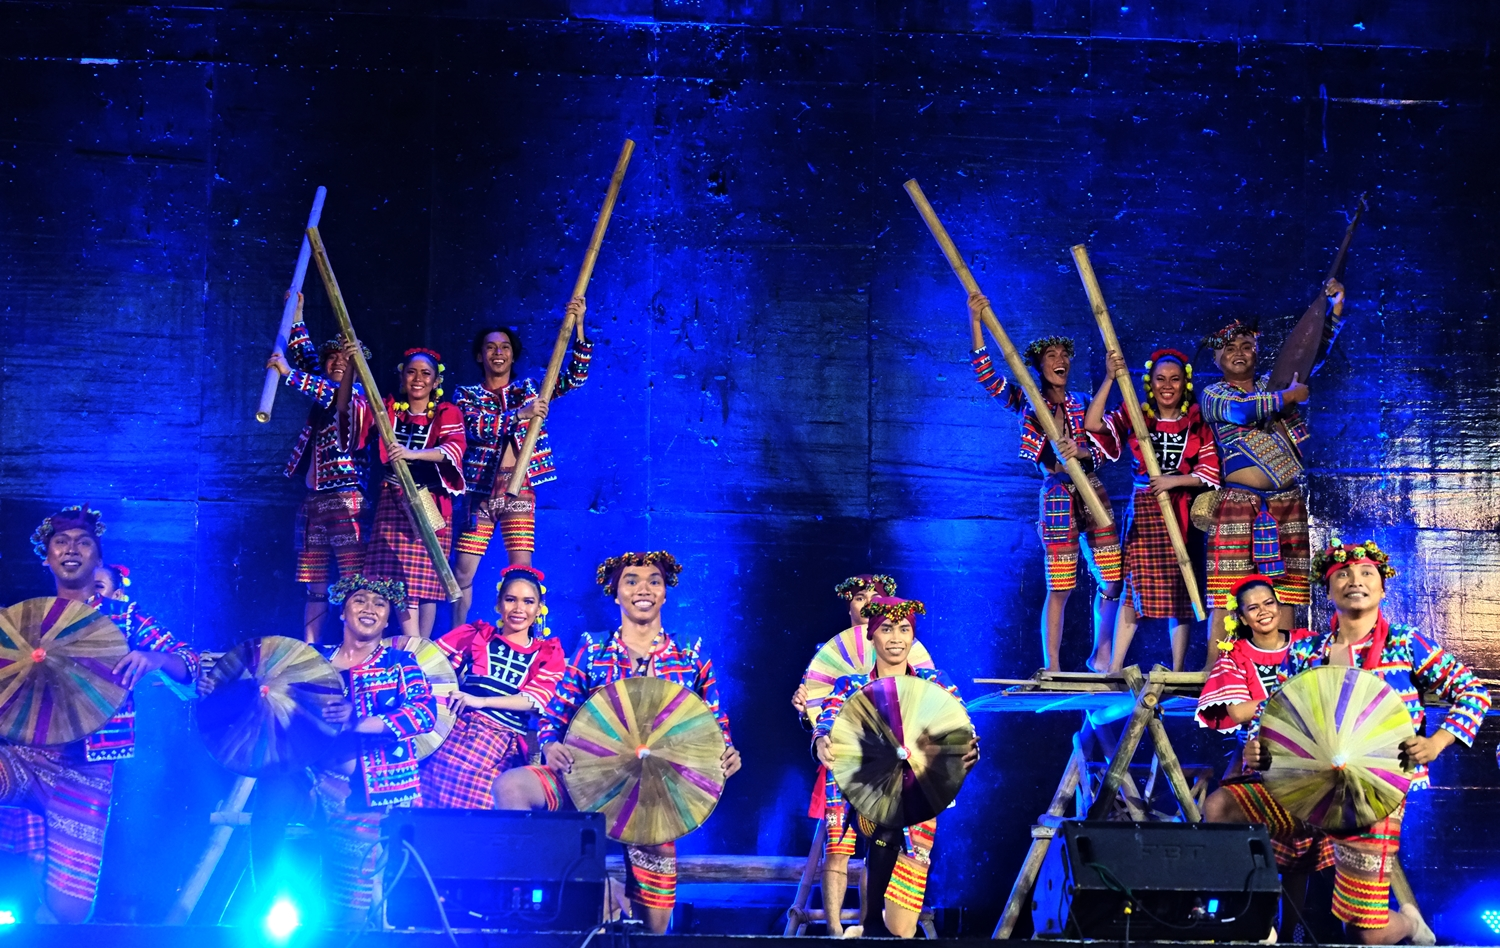 Indak Kudong gather Mindanao's top cultural performing groups in Tacurong City